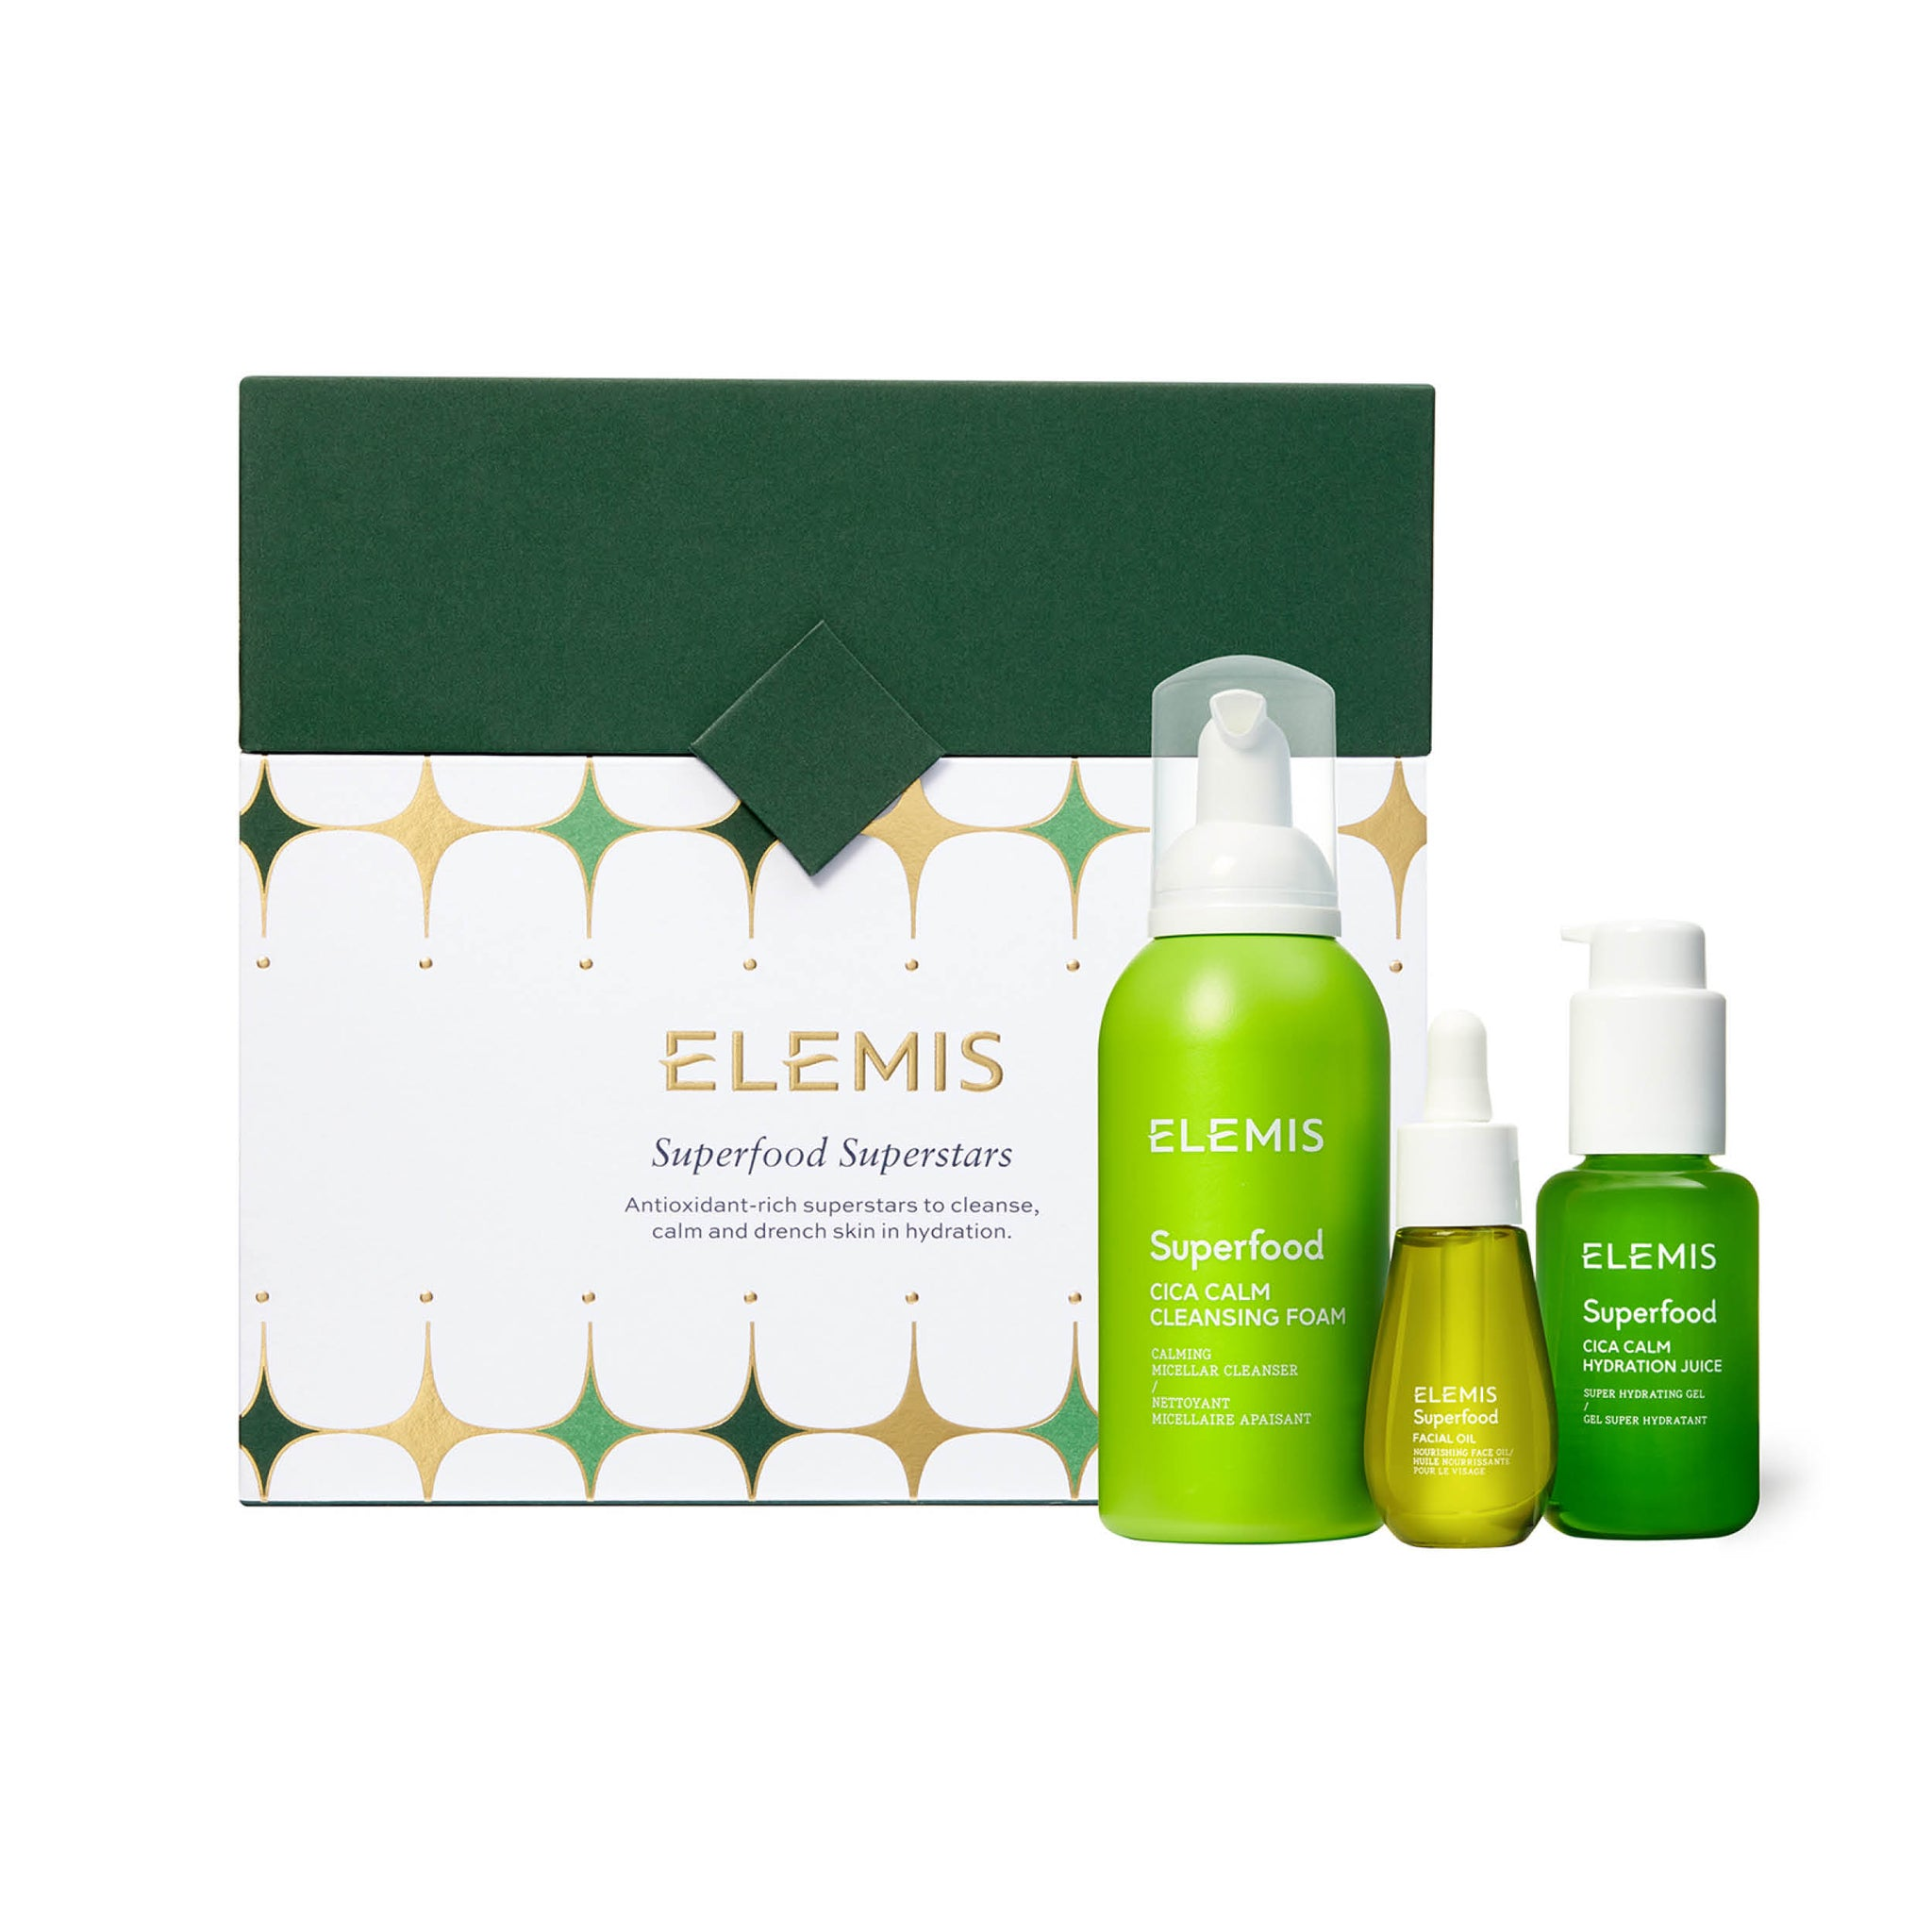 Elemis Superfood Superstars Skincare Gift Set